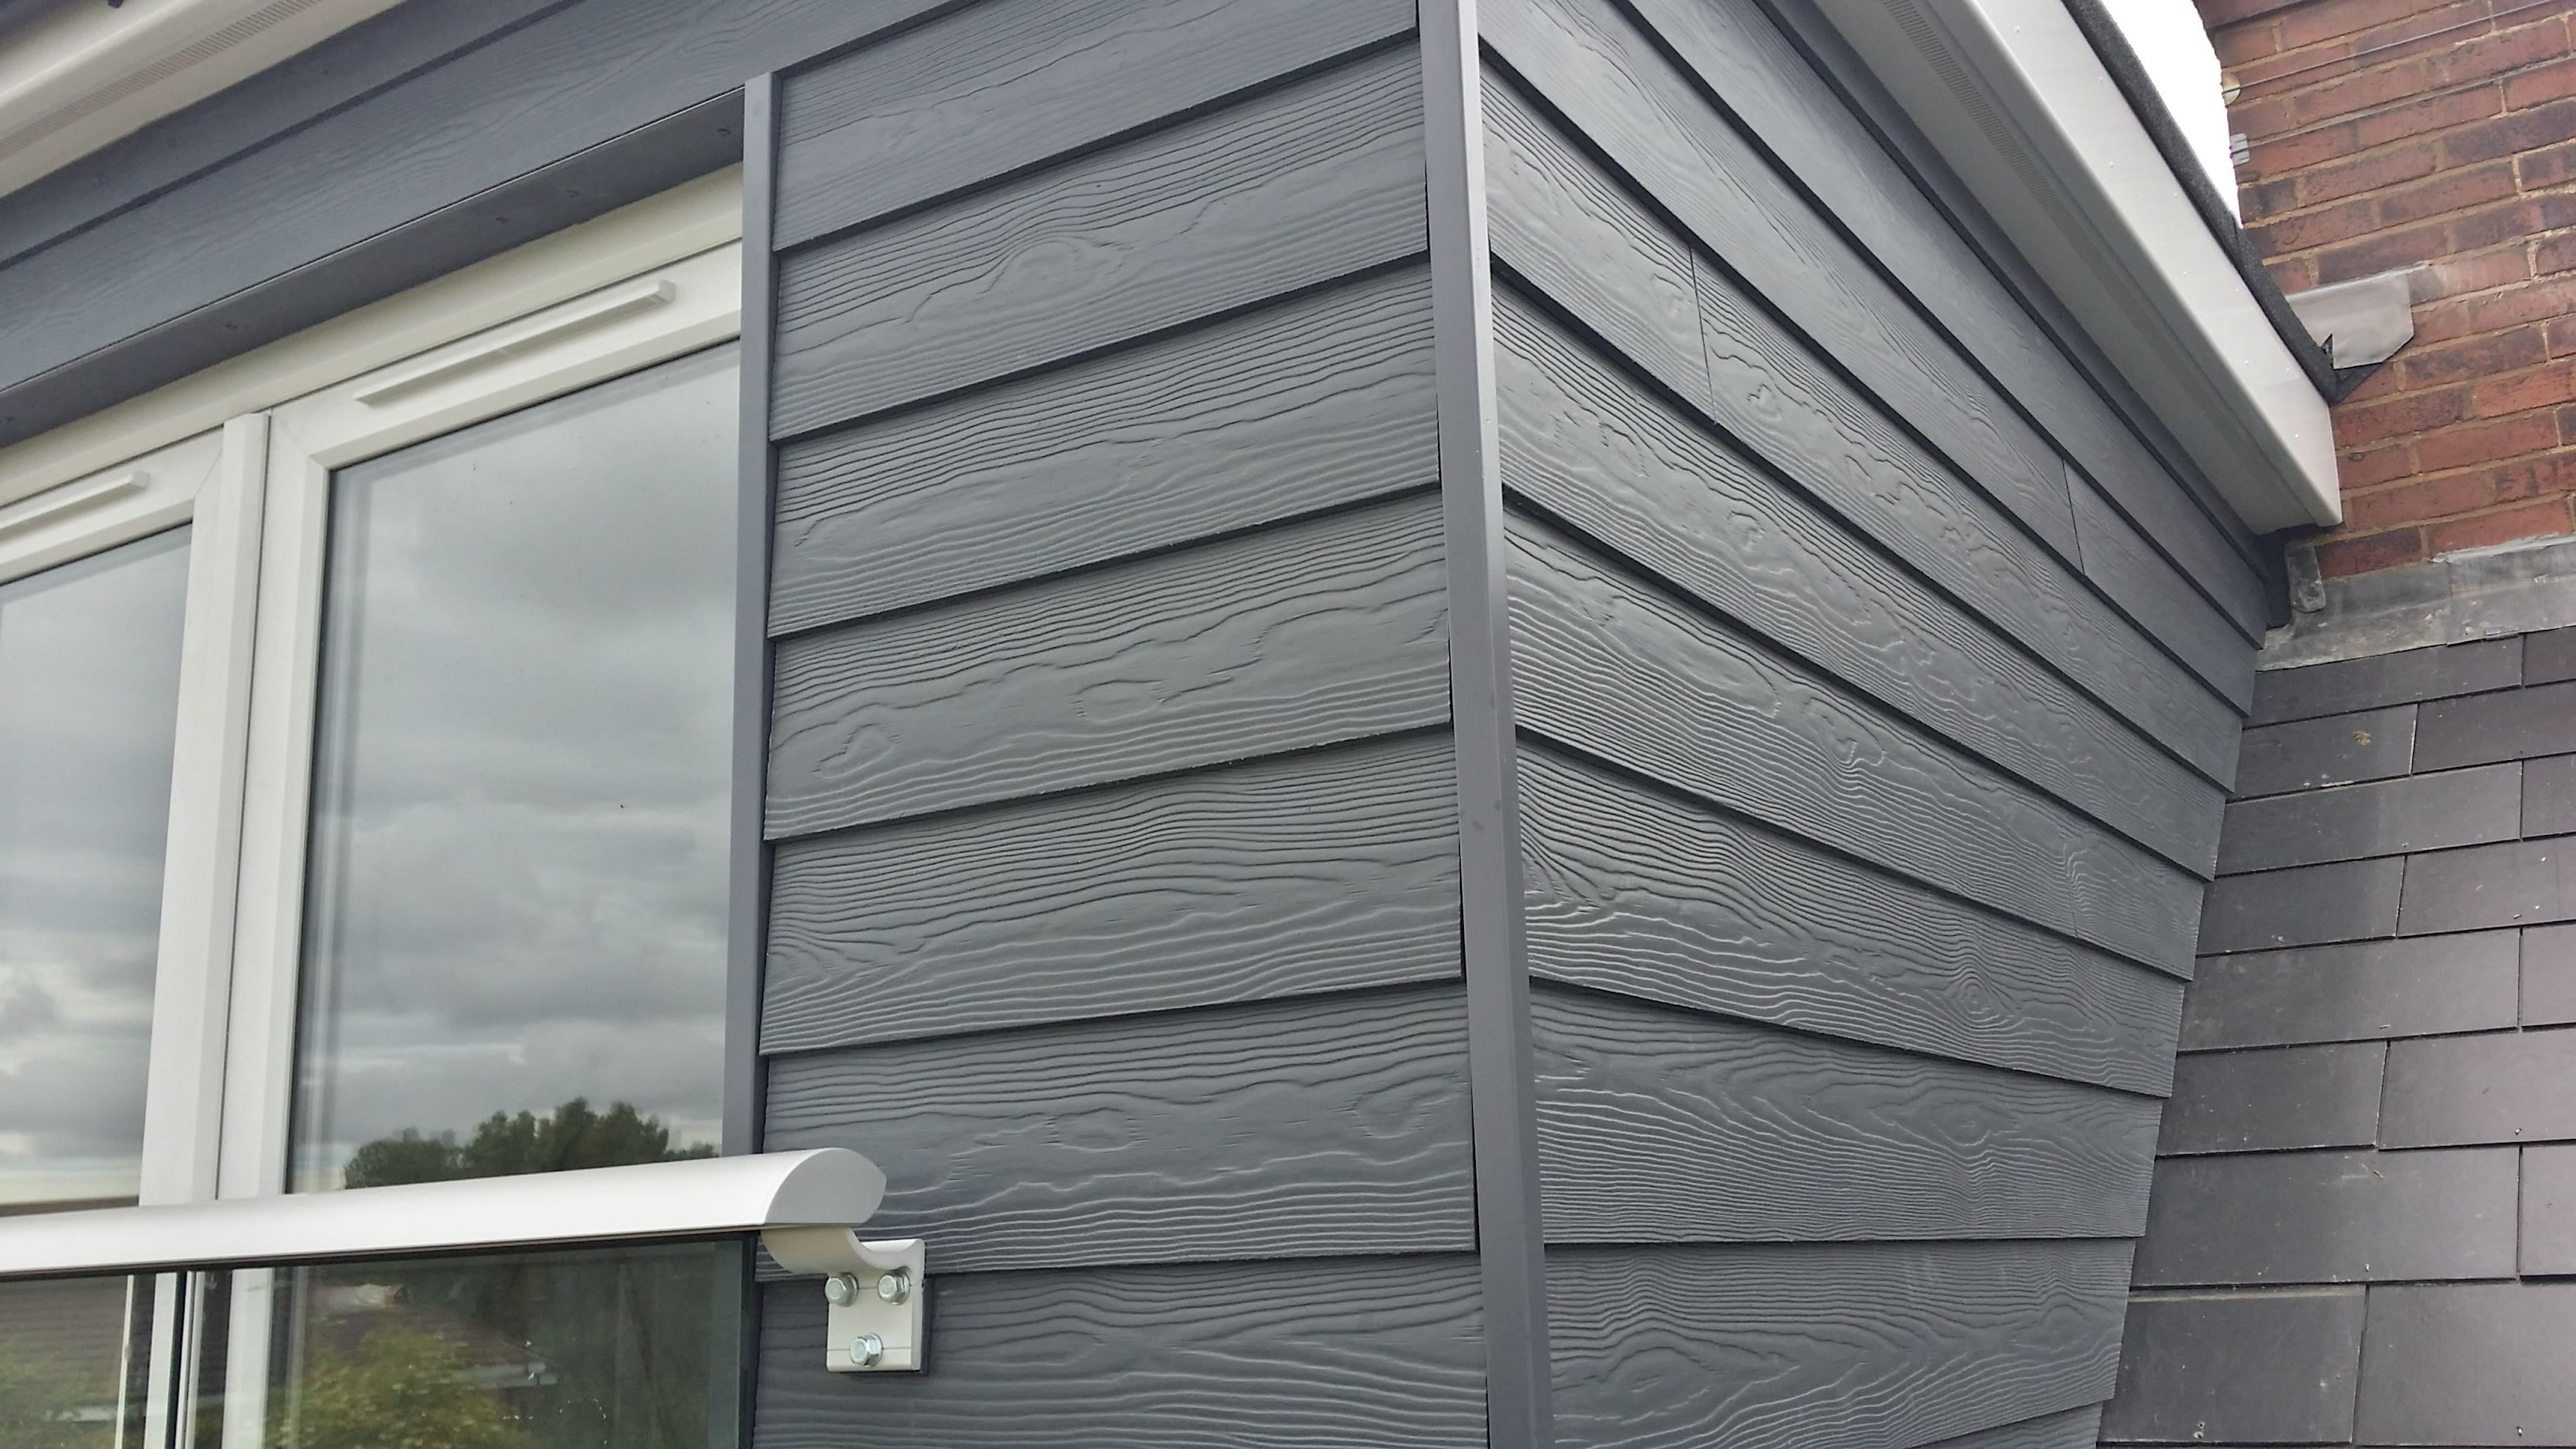 Eternit Fassade Renovieren Fibre Cement Cedral Weatherboard External Cladding Is The